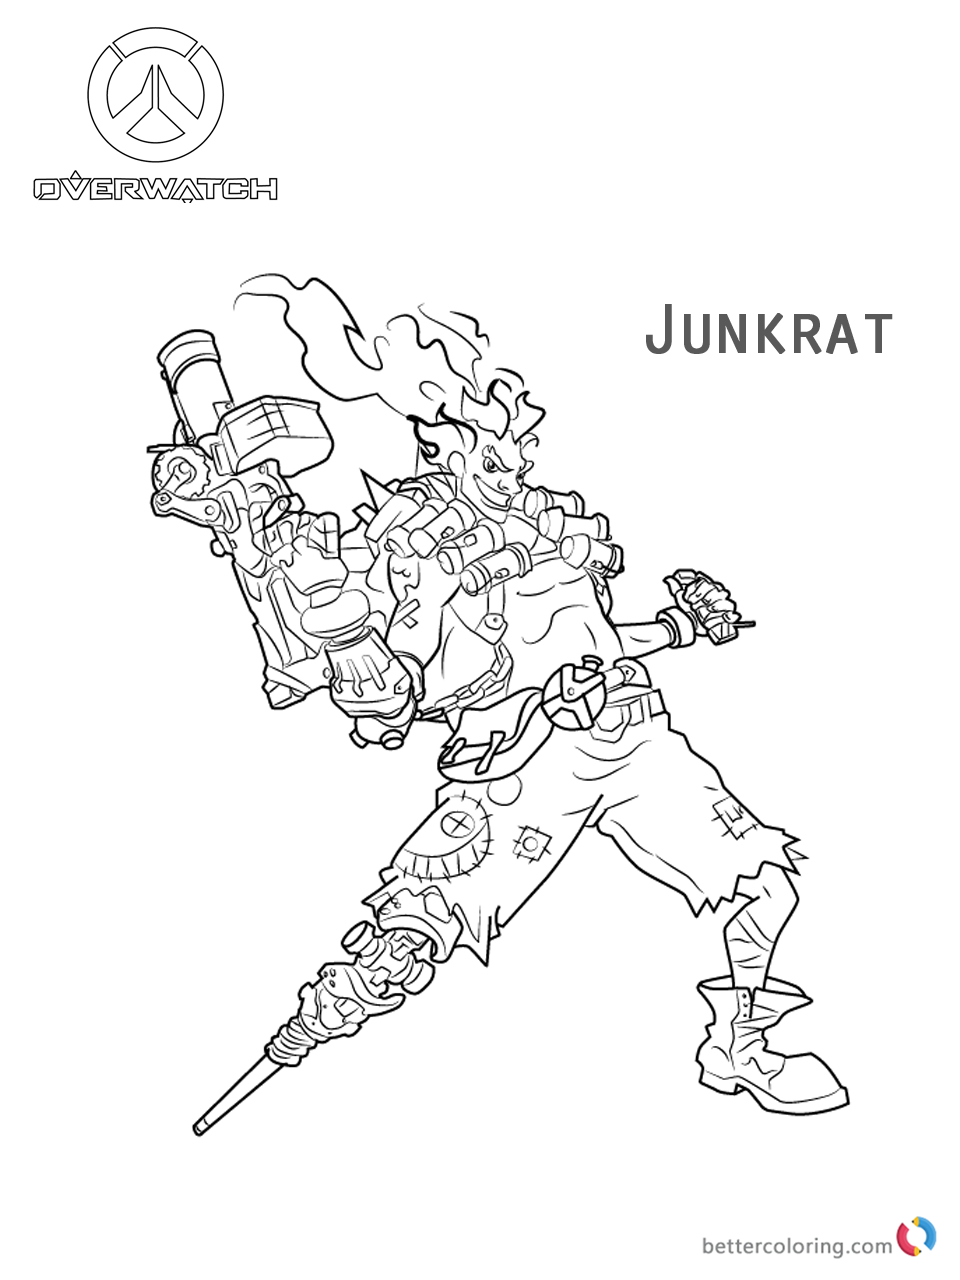 Junkrat from Overwatch coloring pages printable